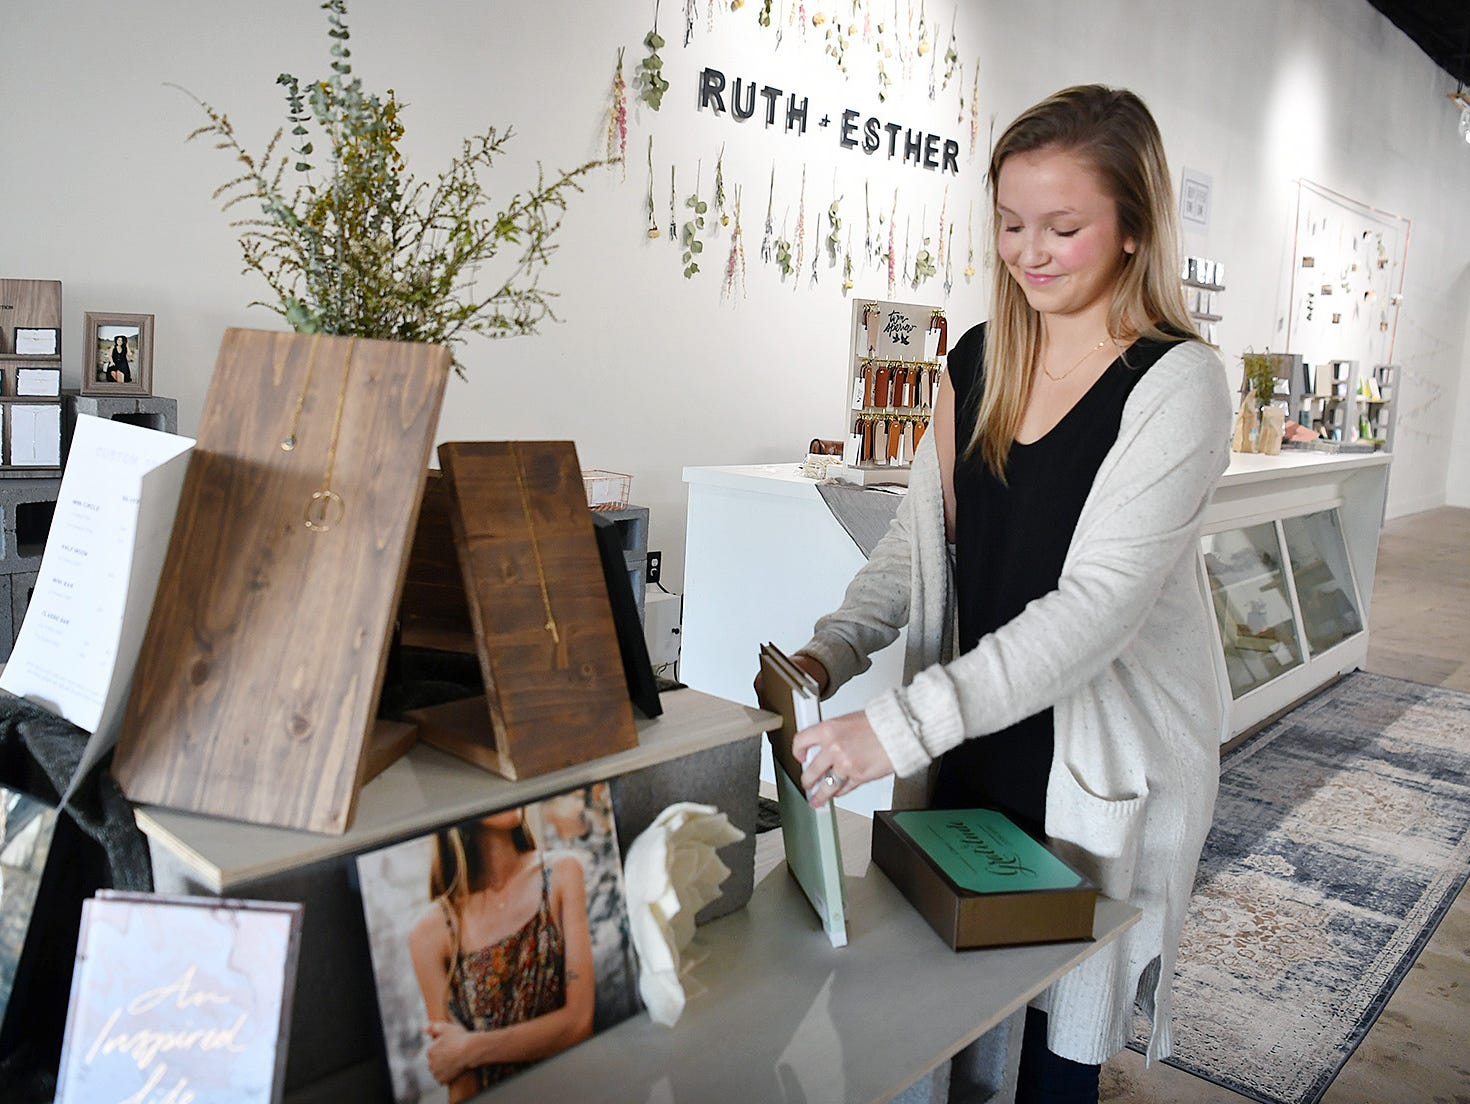 Creative Director Lauren Foster sets up merchandise in the new Ruth & Esther store in Scott Square. The business is a division of Dear Heart, a jewelry business started by Nichole Kirk in 2013.